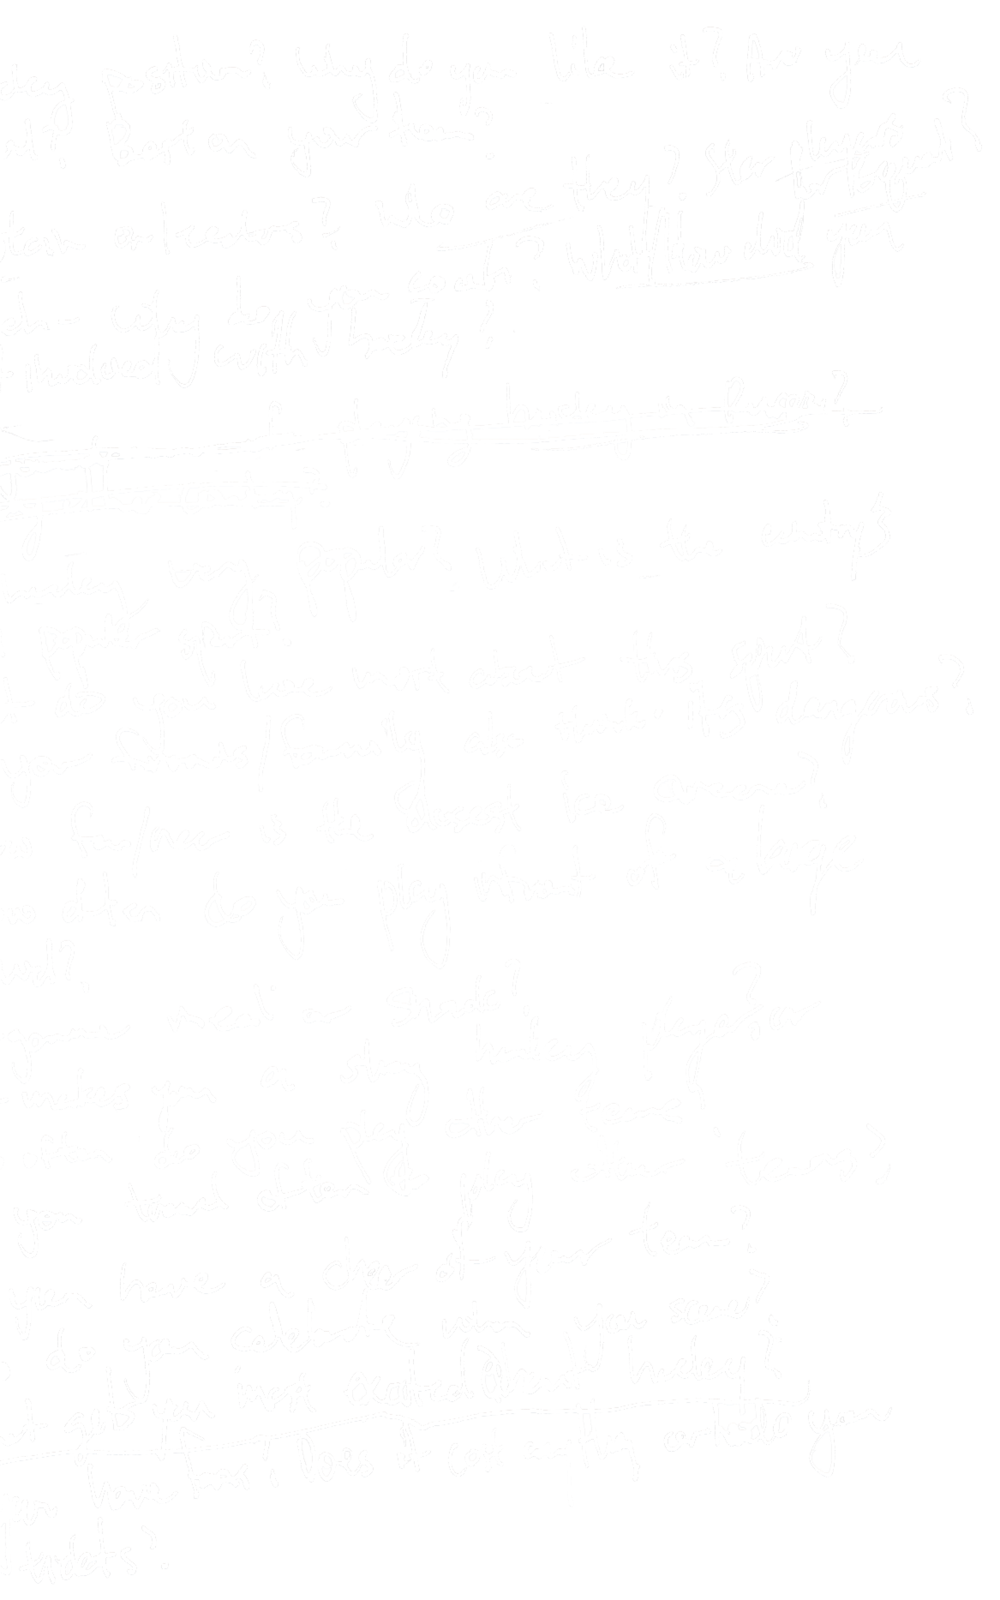 sunny-notes-second-page.png